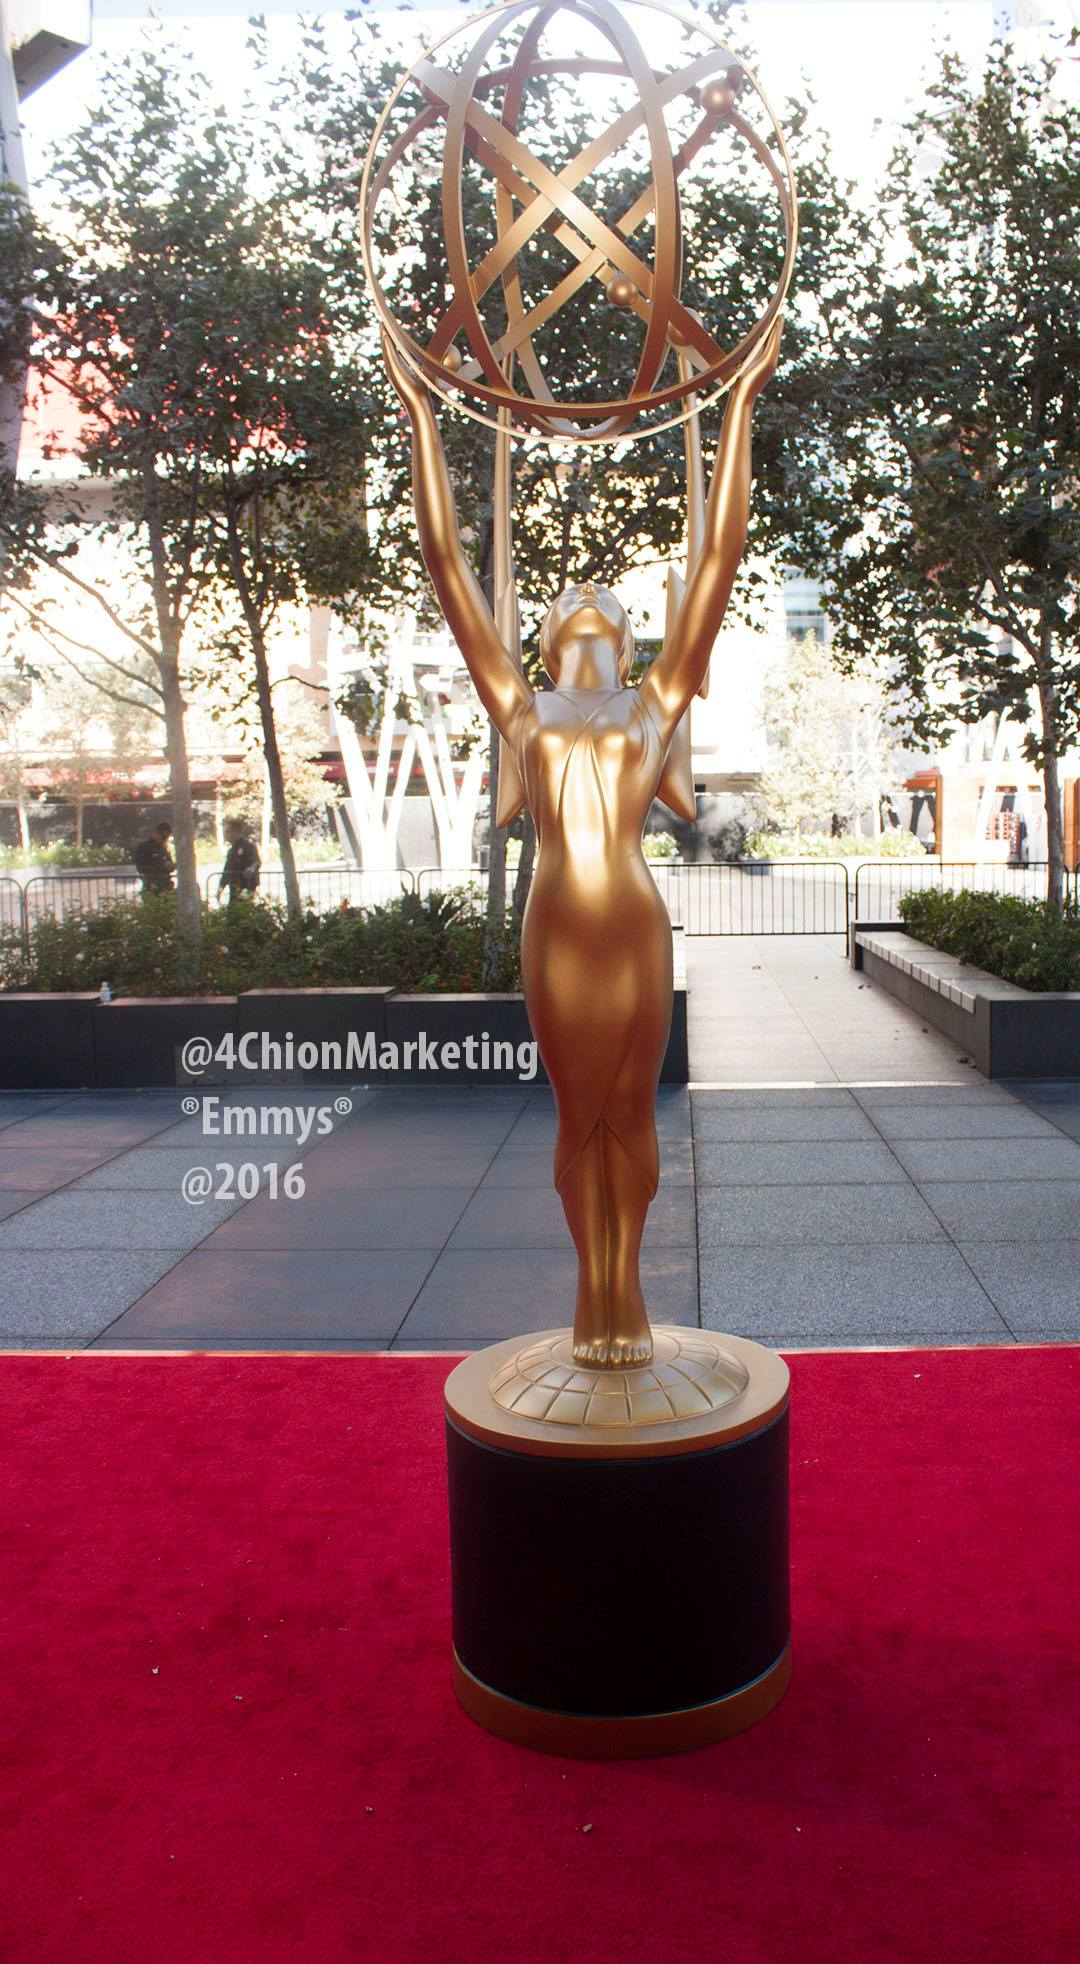 Emmys® Creative Arts 4Chion Lifestyle